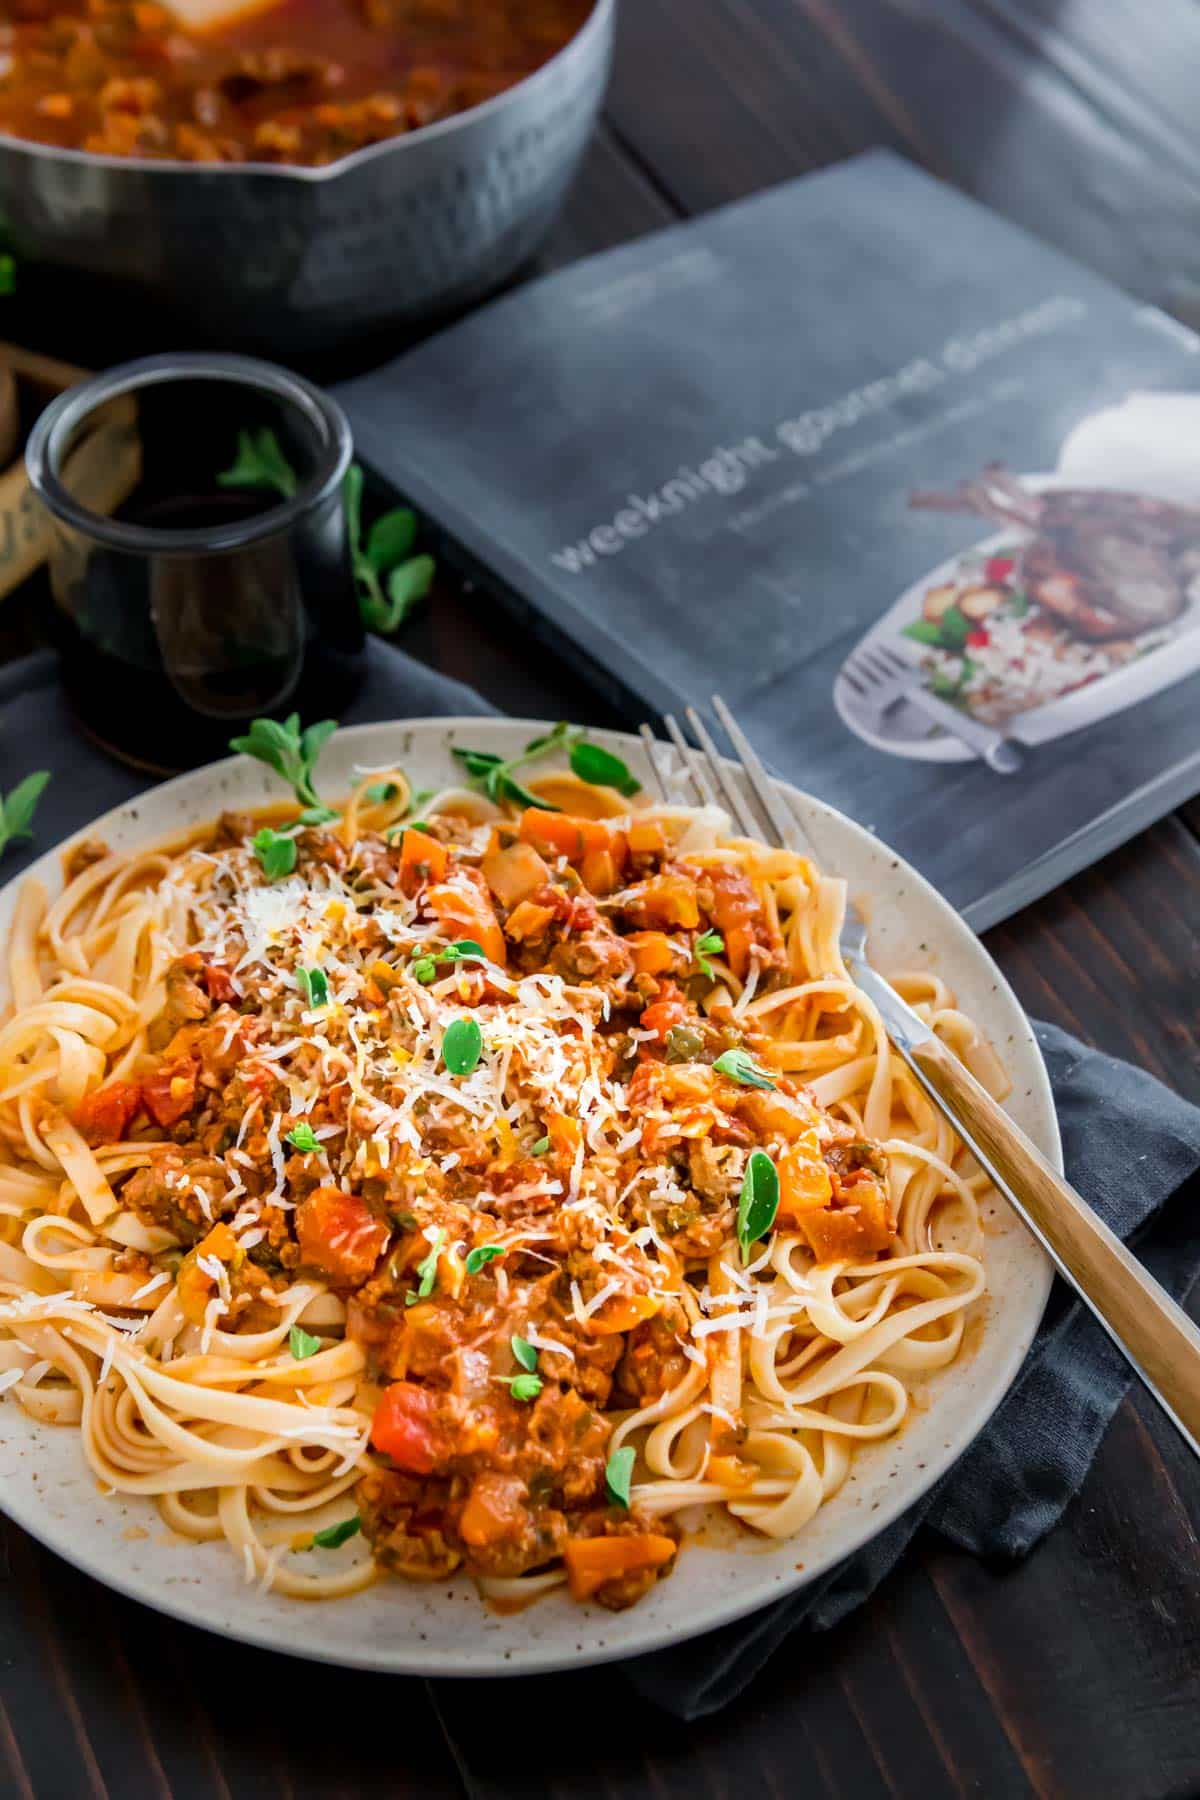 Classic Instant Pot bolognese from Weeknight Gourmet Dinners